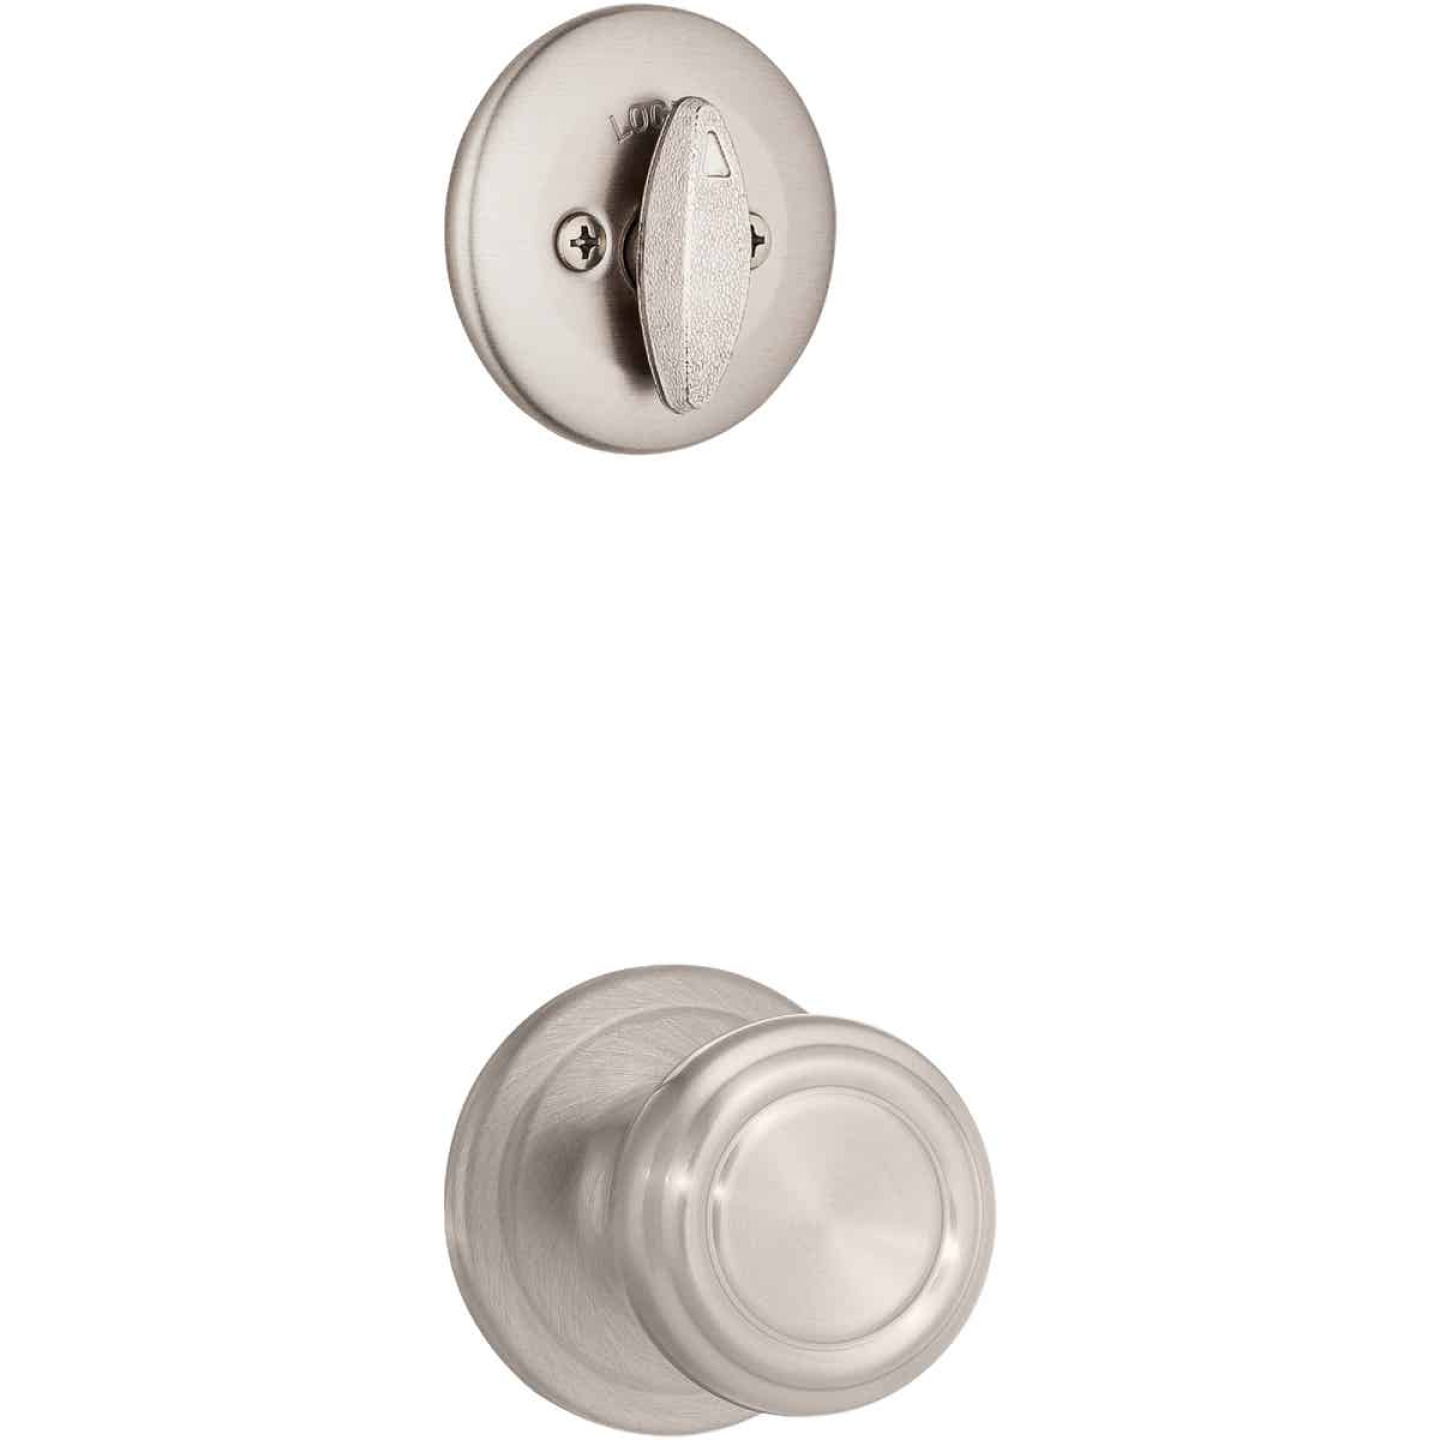 Kwikset Signature Series Chelsea Satin Nickel Entry Door Handleset with Smartkey & Cameron Knob Image 4